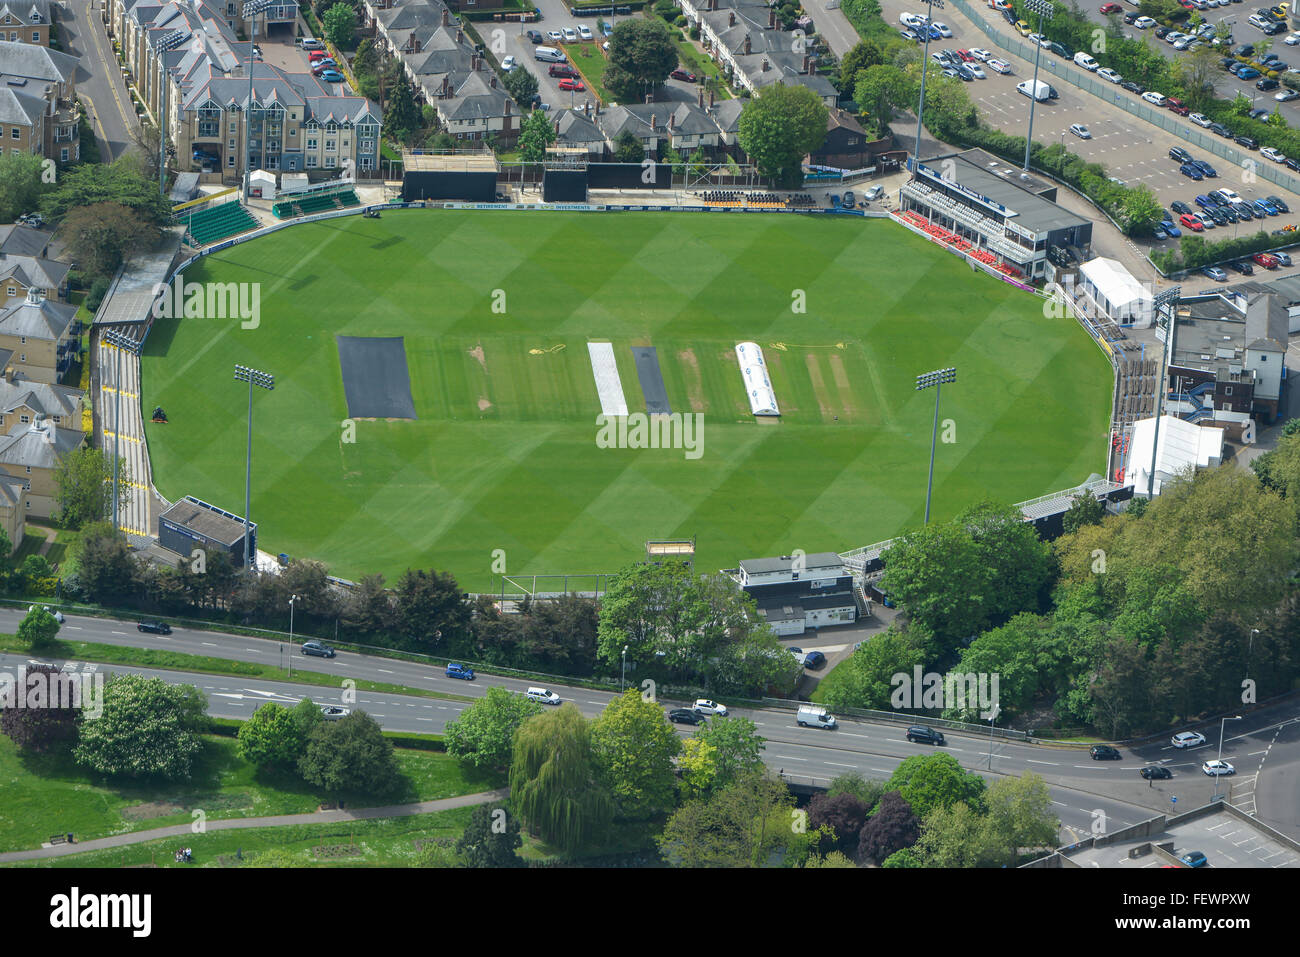 An aerial view of the Essex County Cricket Ground in Chelmsford - Stock Image